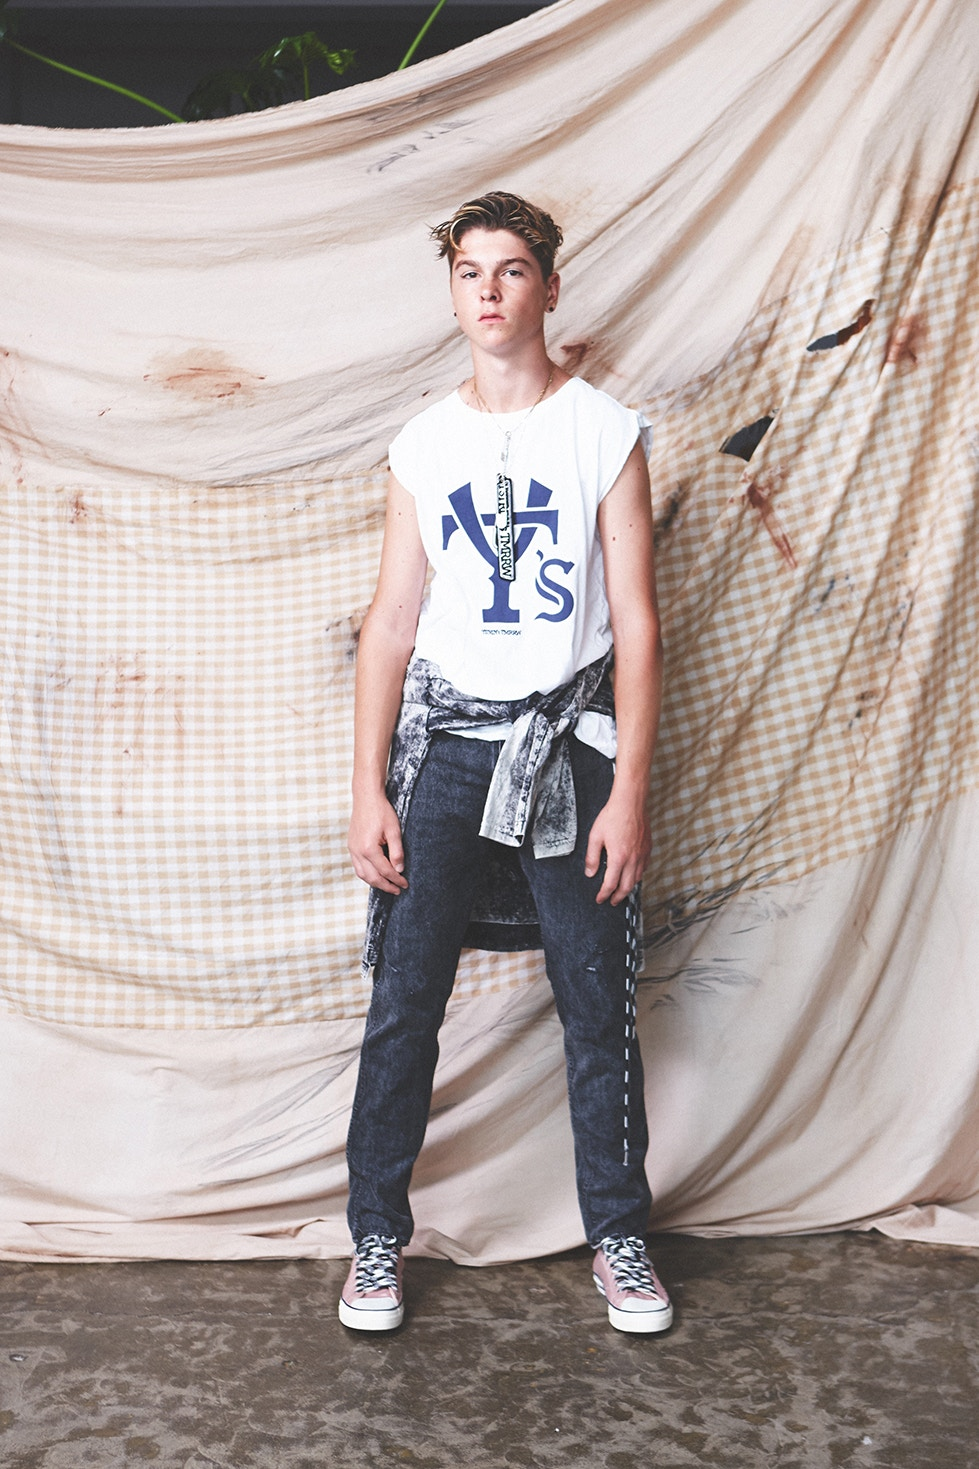 ystrdys-tmrrw-spring-summer-2018-lookbook-15.jpg